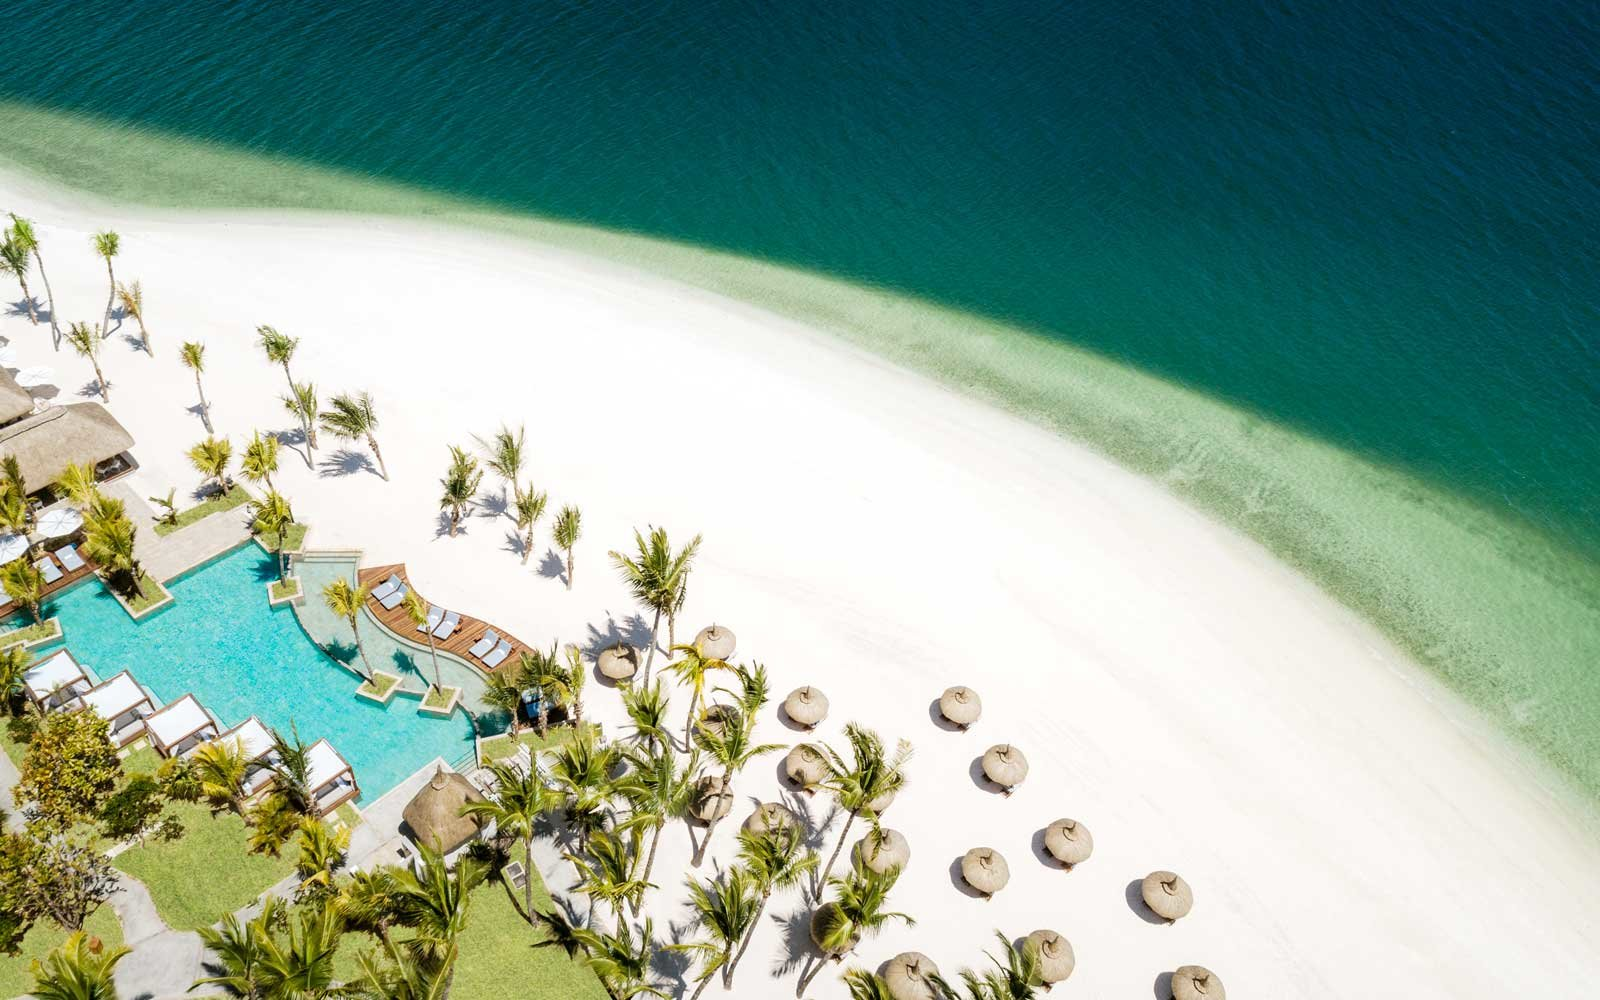 Aerial view of the One & Only Le Saint Geran resort, in Mauritius